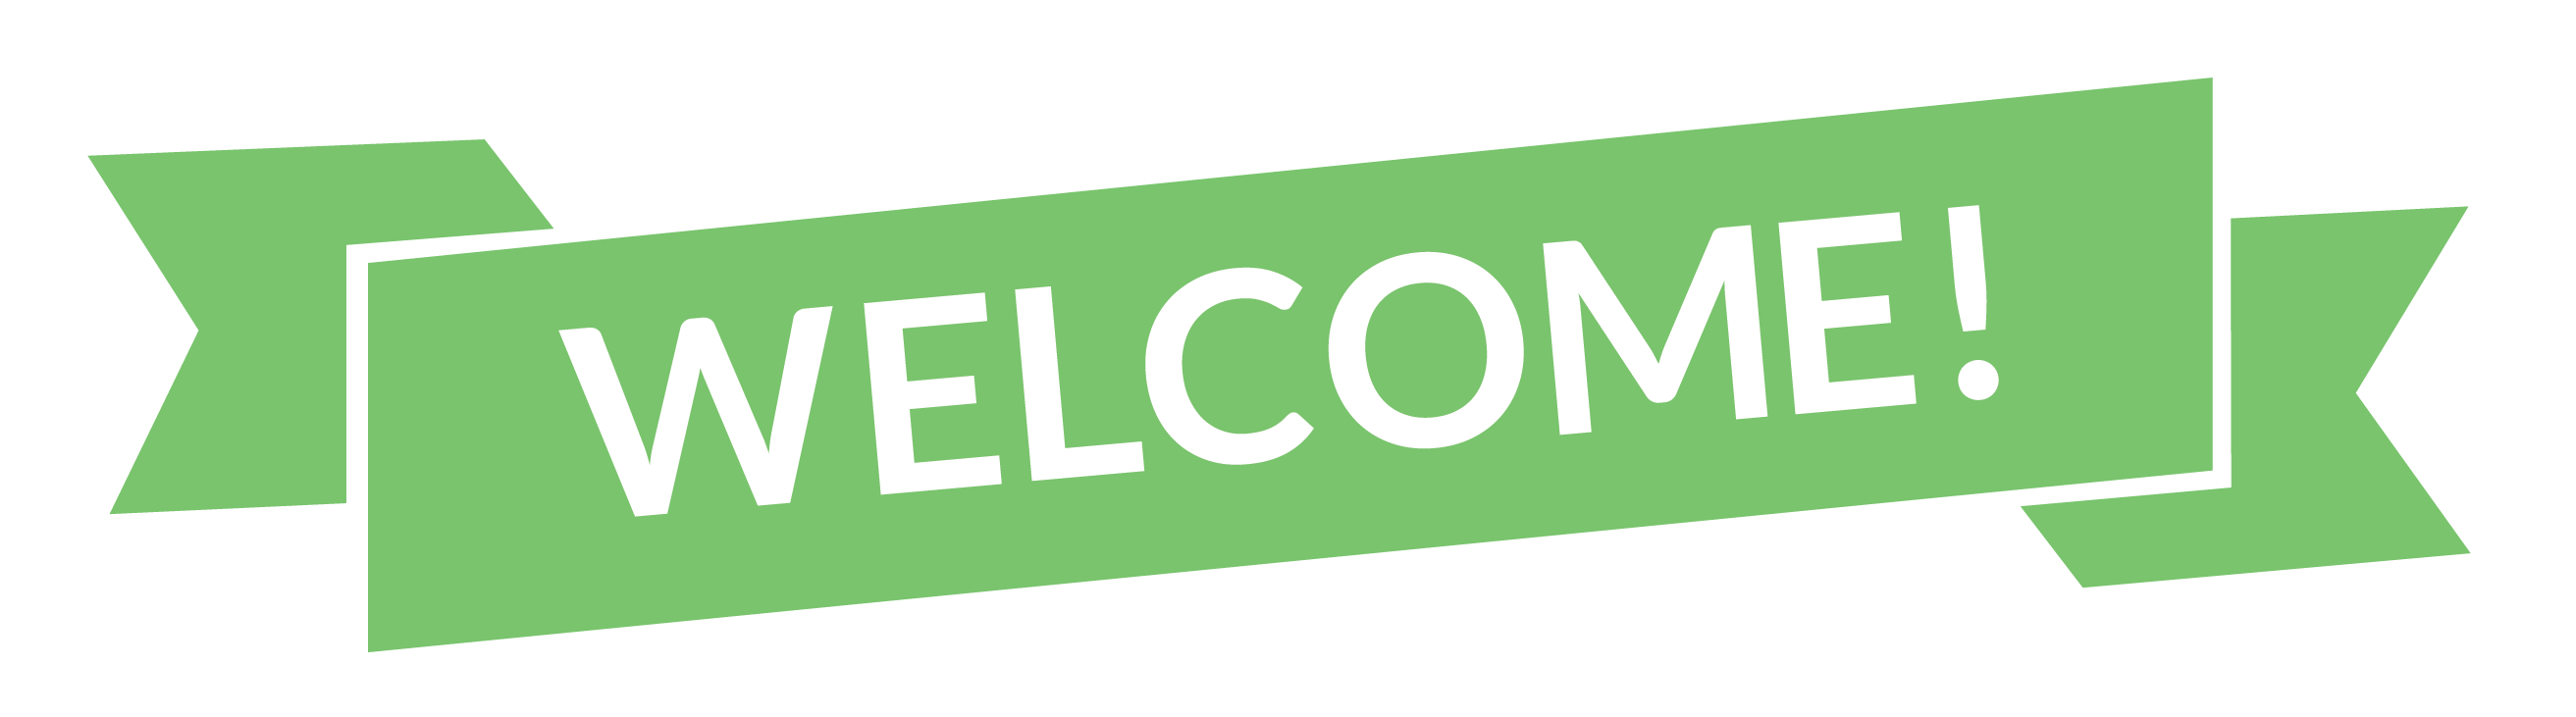 Welcome sign png. Transparent pictures free icons